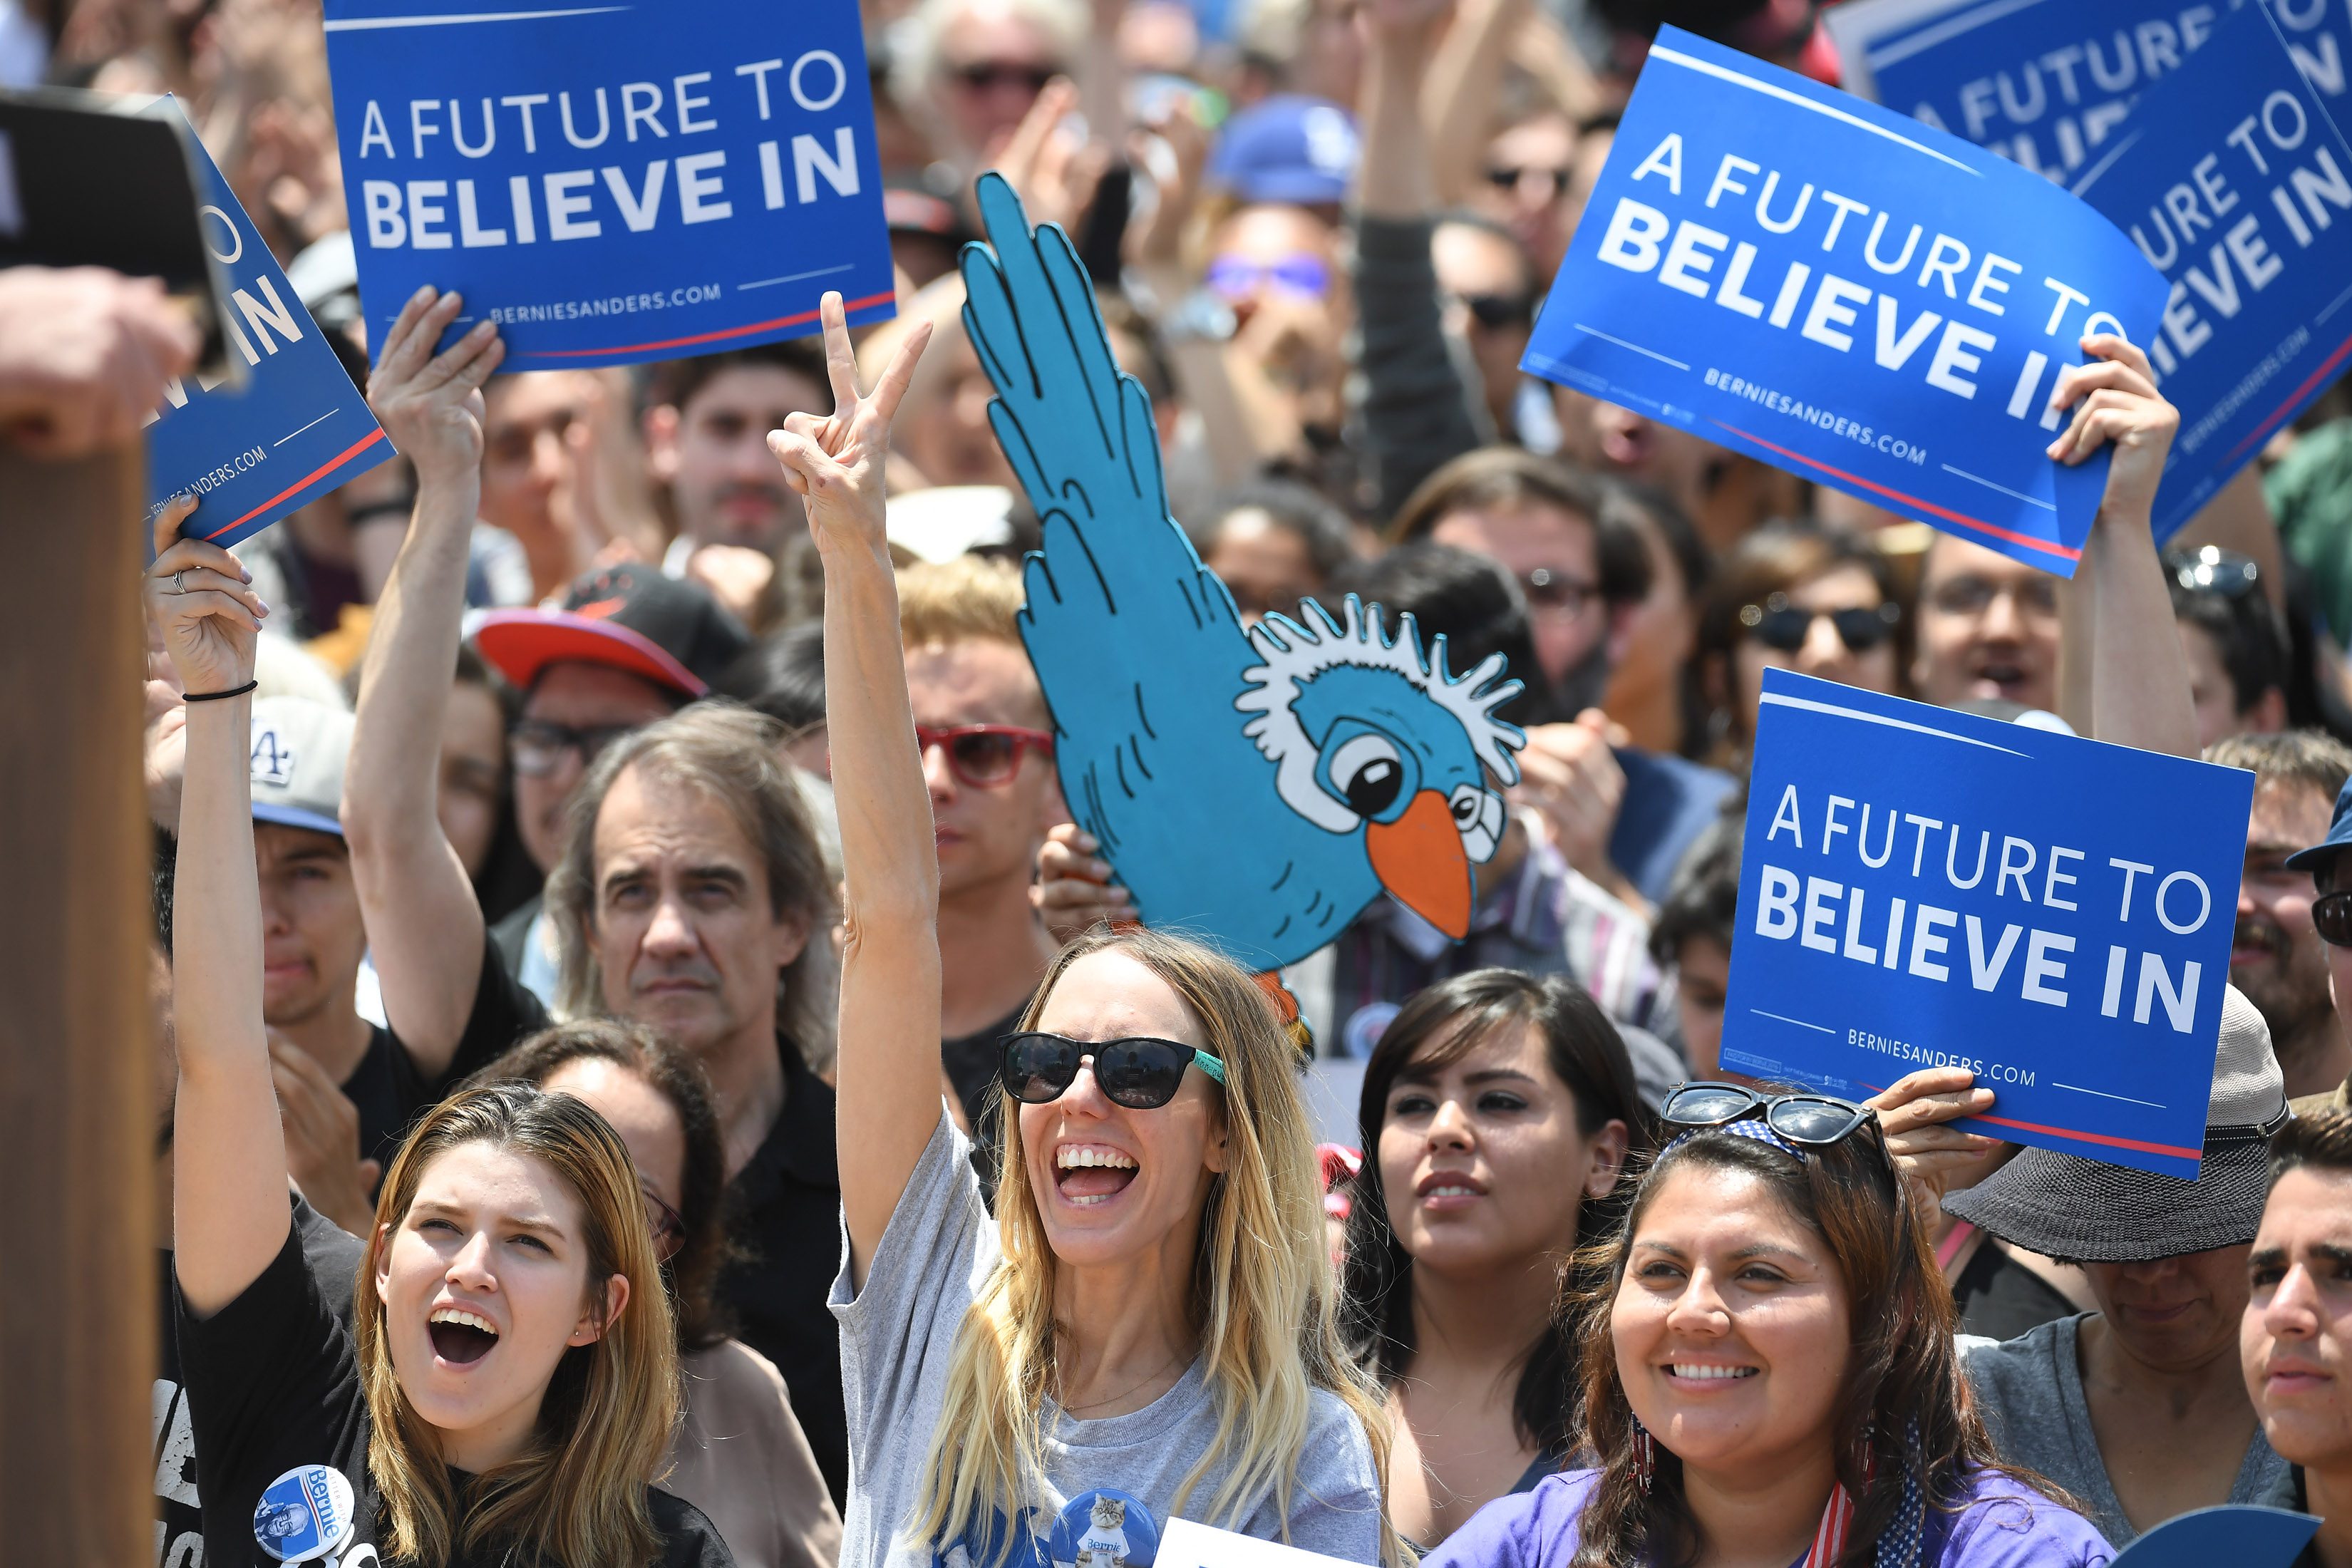 People listen as Bernie Sanders speaks during a rally at Lincoln Park on May 23, 2016 in Los Angeles.